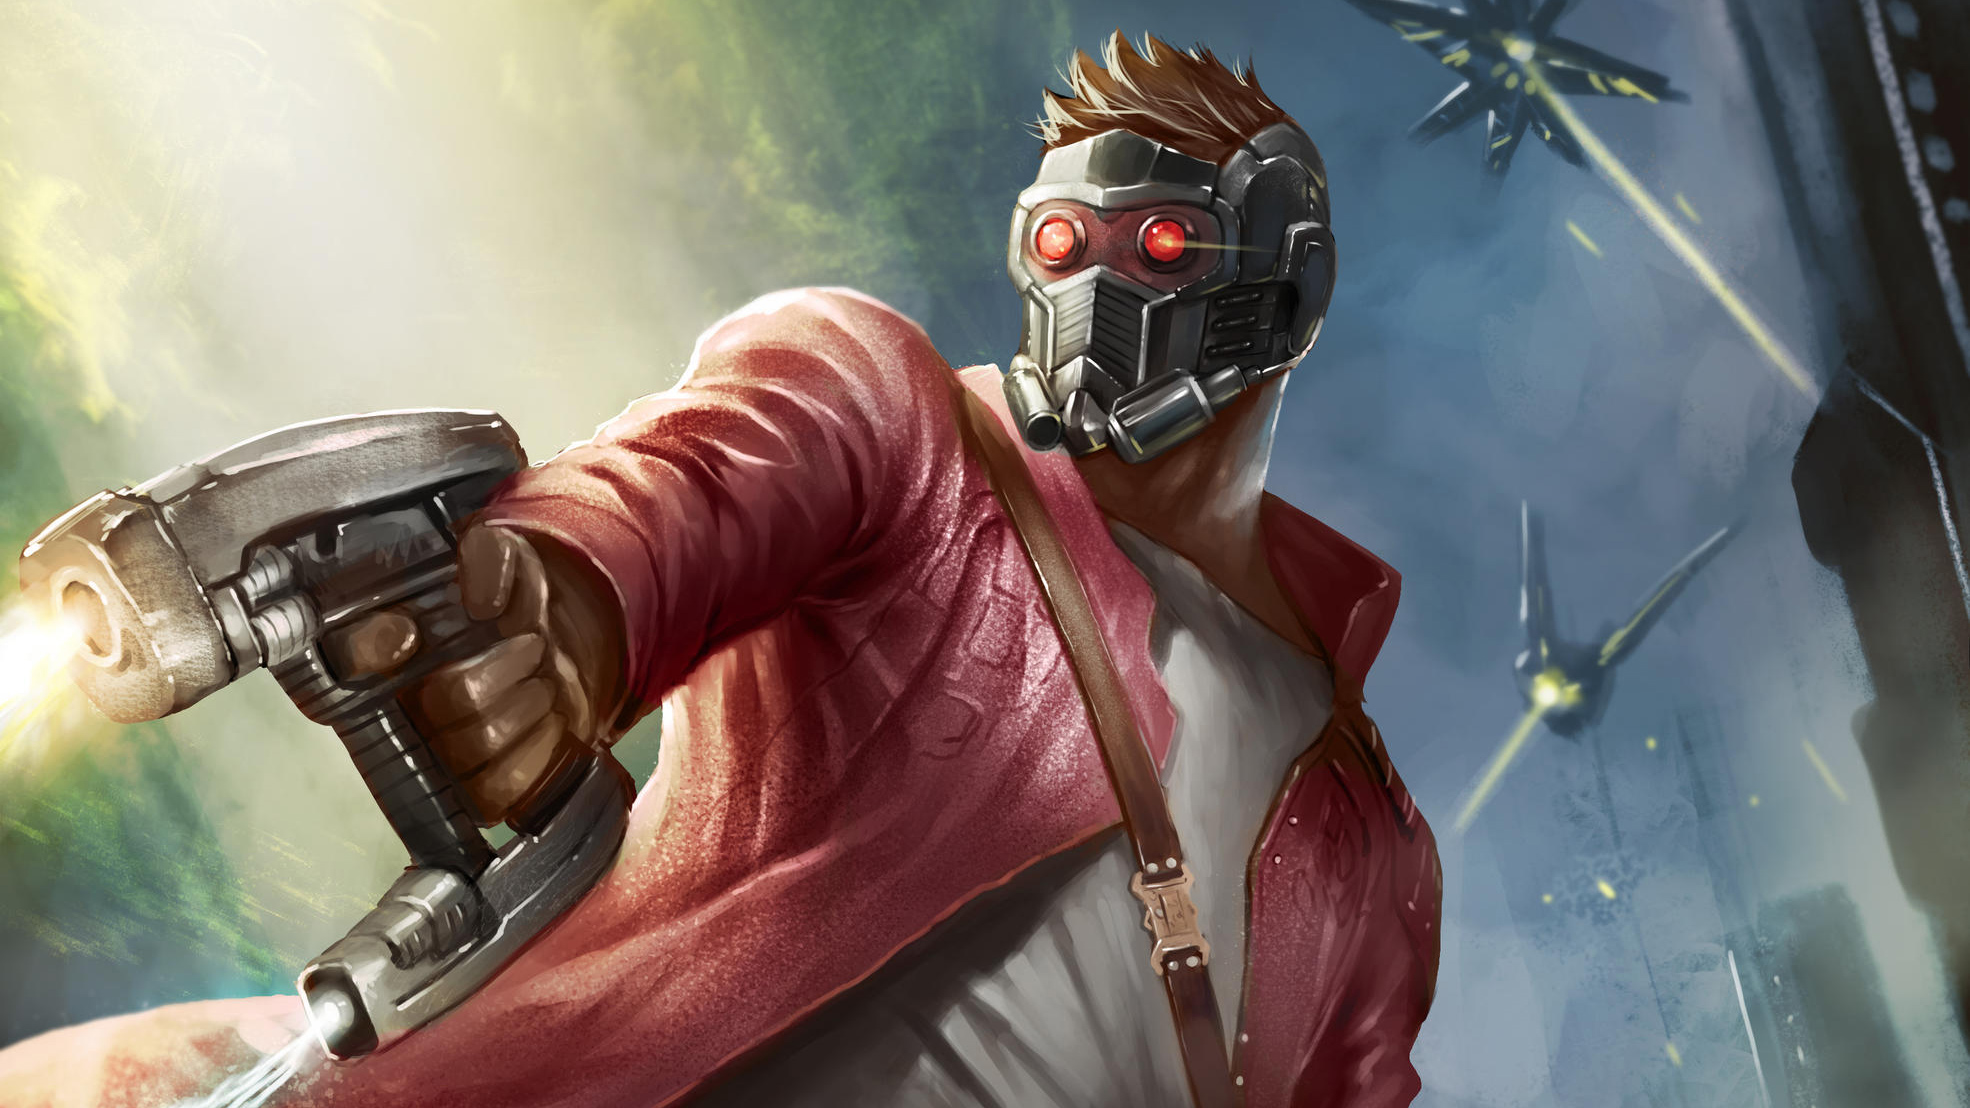 Wallpaper Of Guardians Of The Galaxy Marvel Comics Star Lord